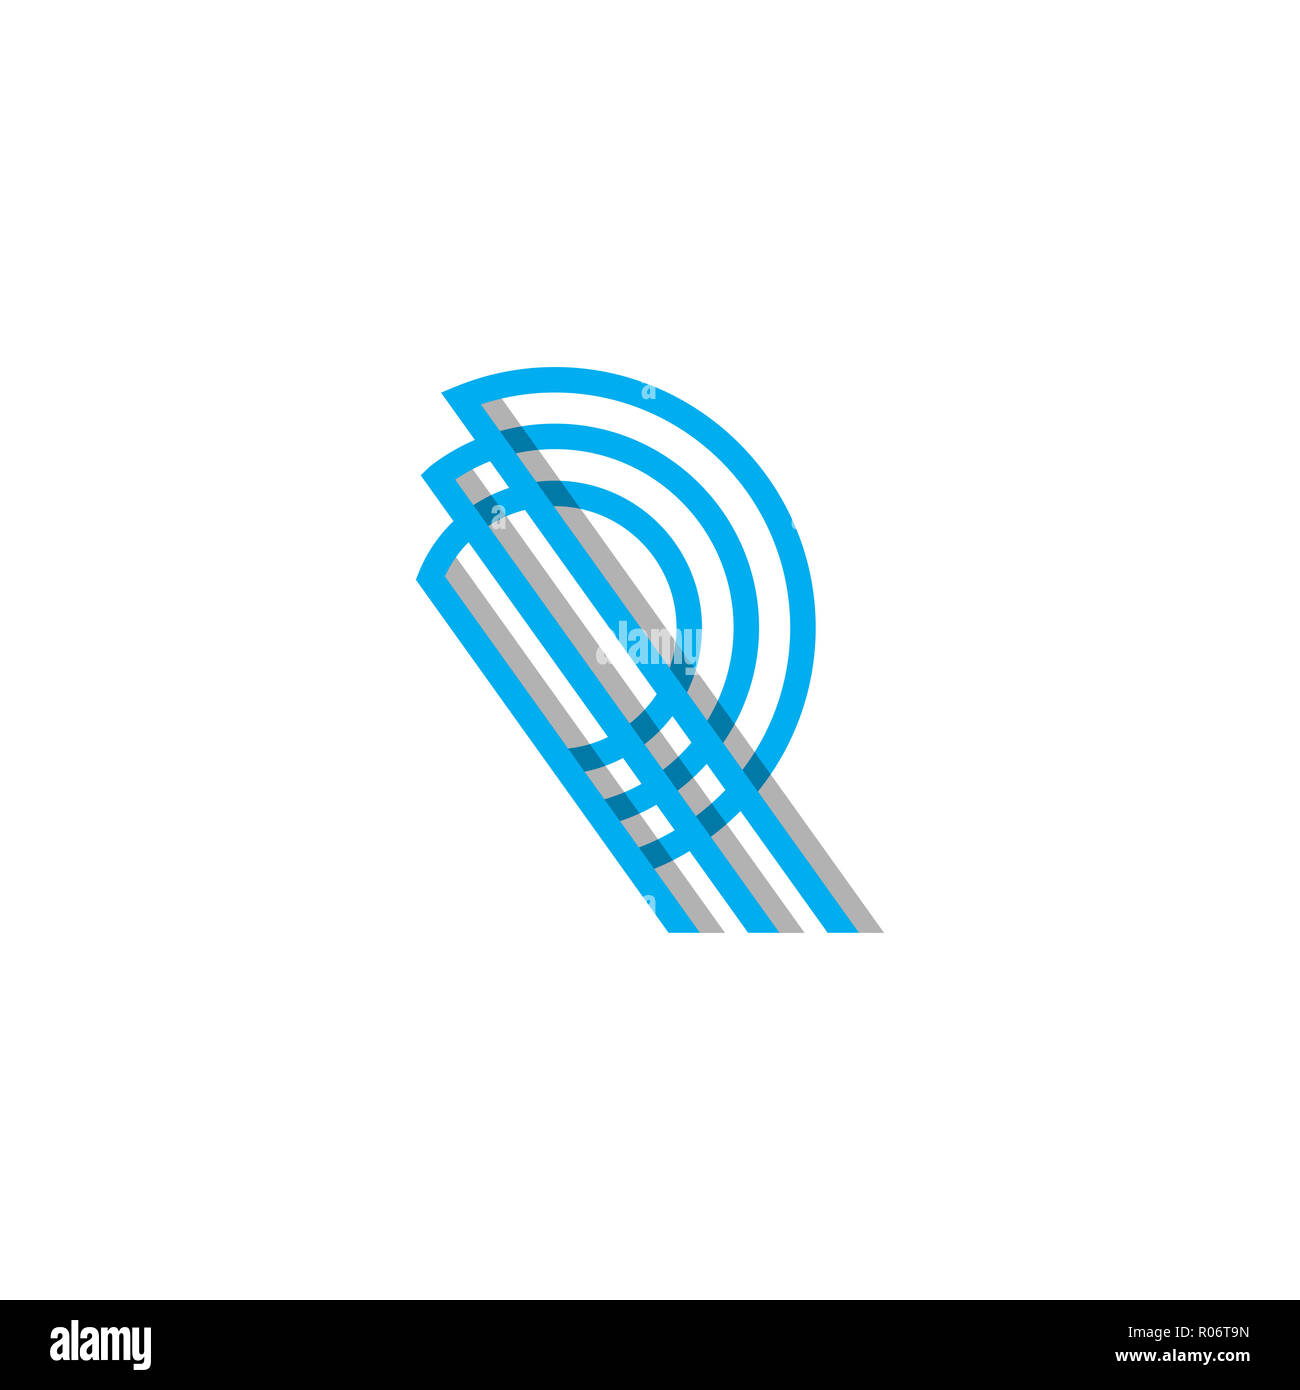 initial Monogram R Logo Template Vector illustration and inspiration, ready use for your brand - Stock Image